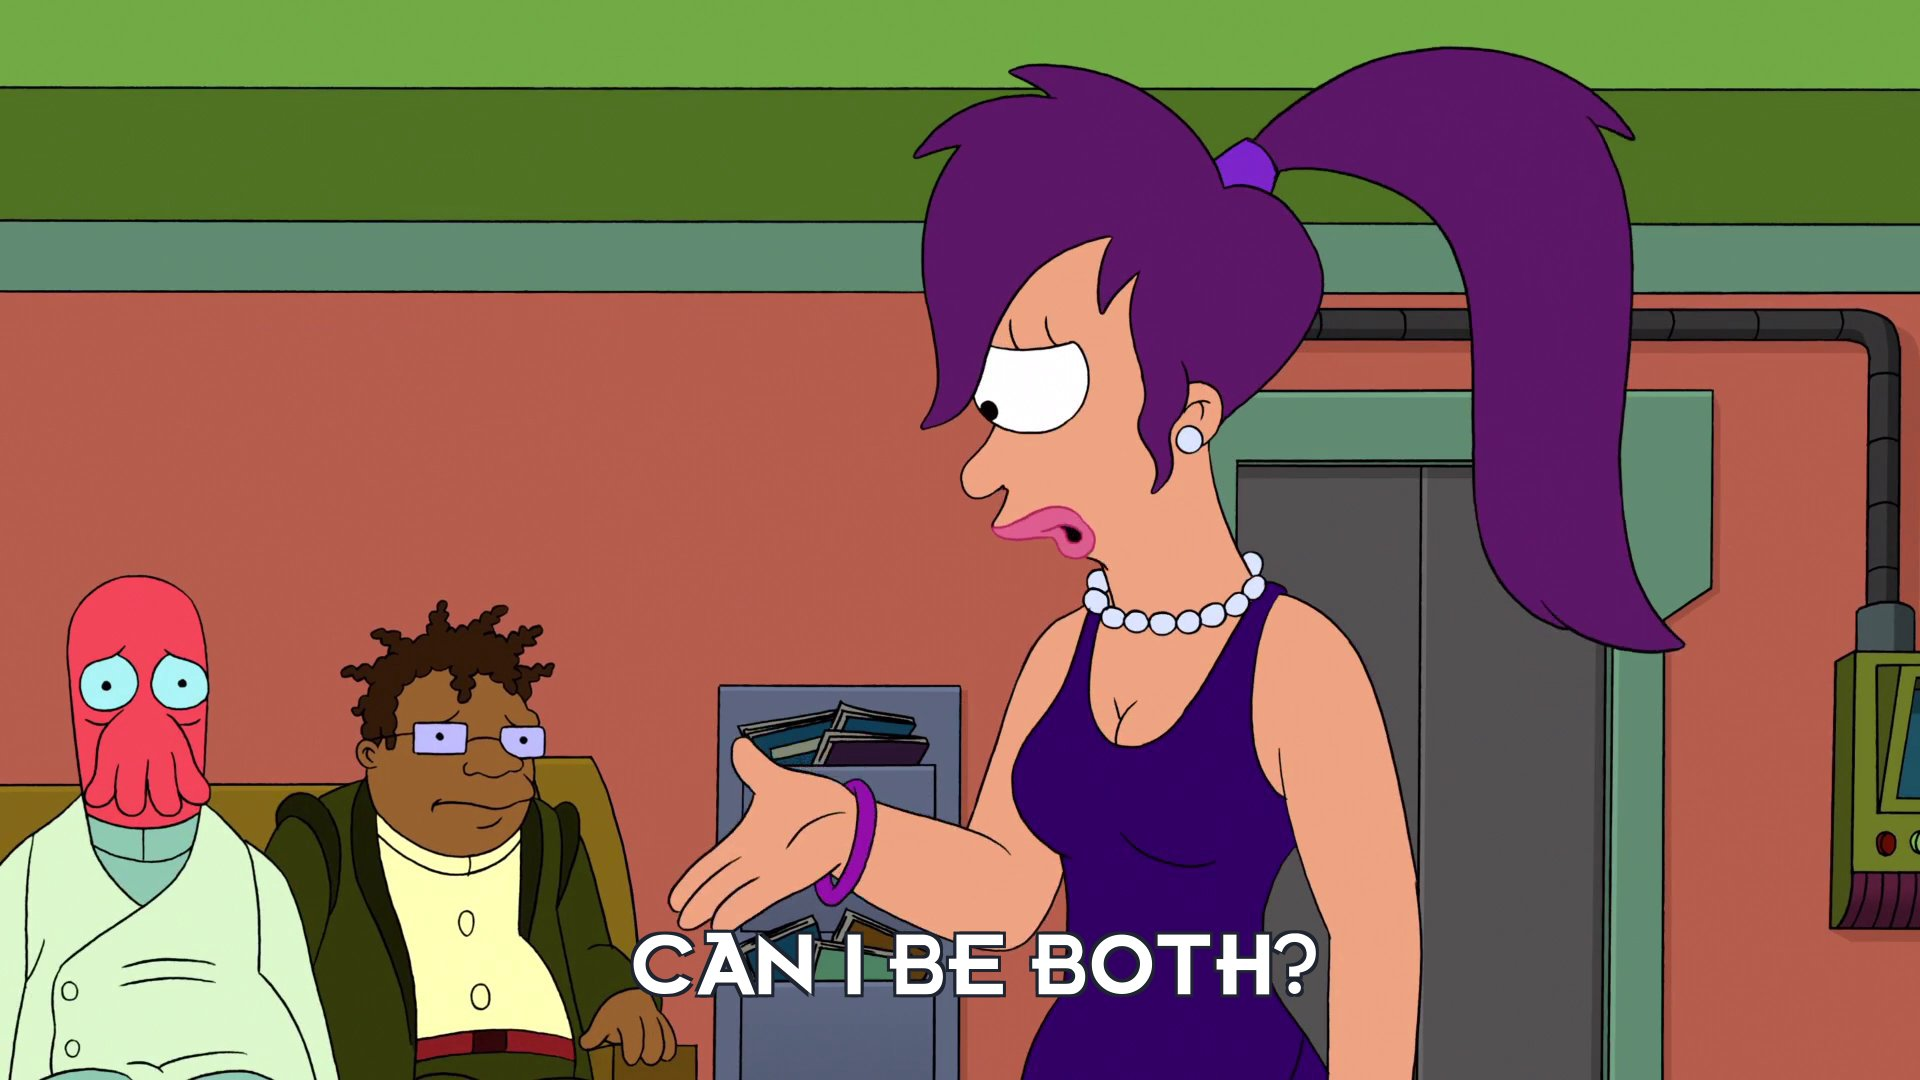 Turanga Leela: Can I be both?